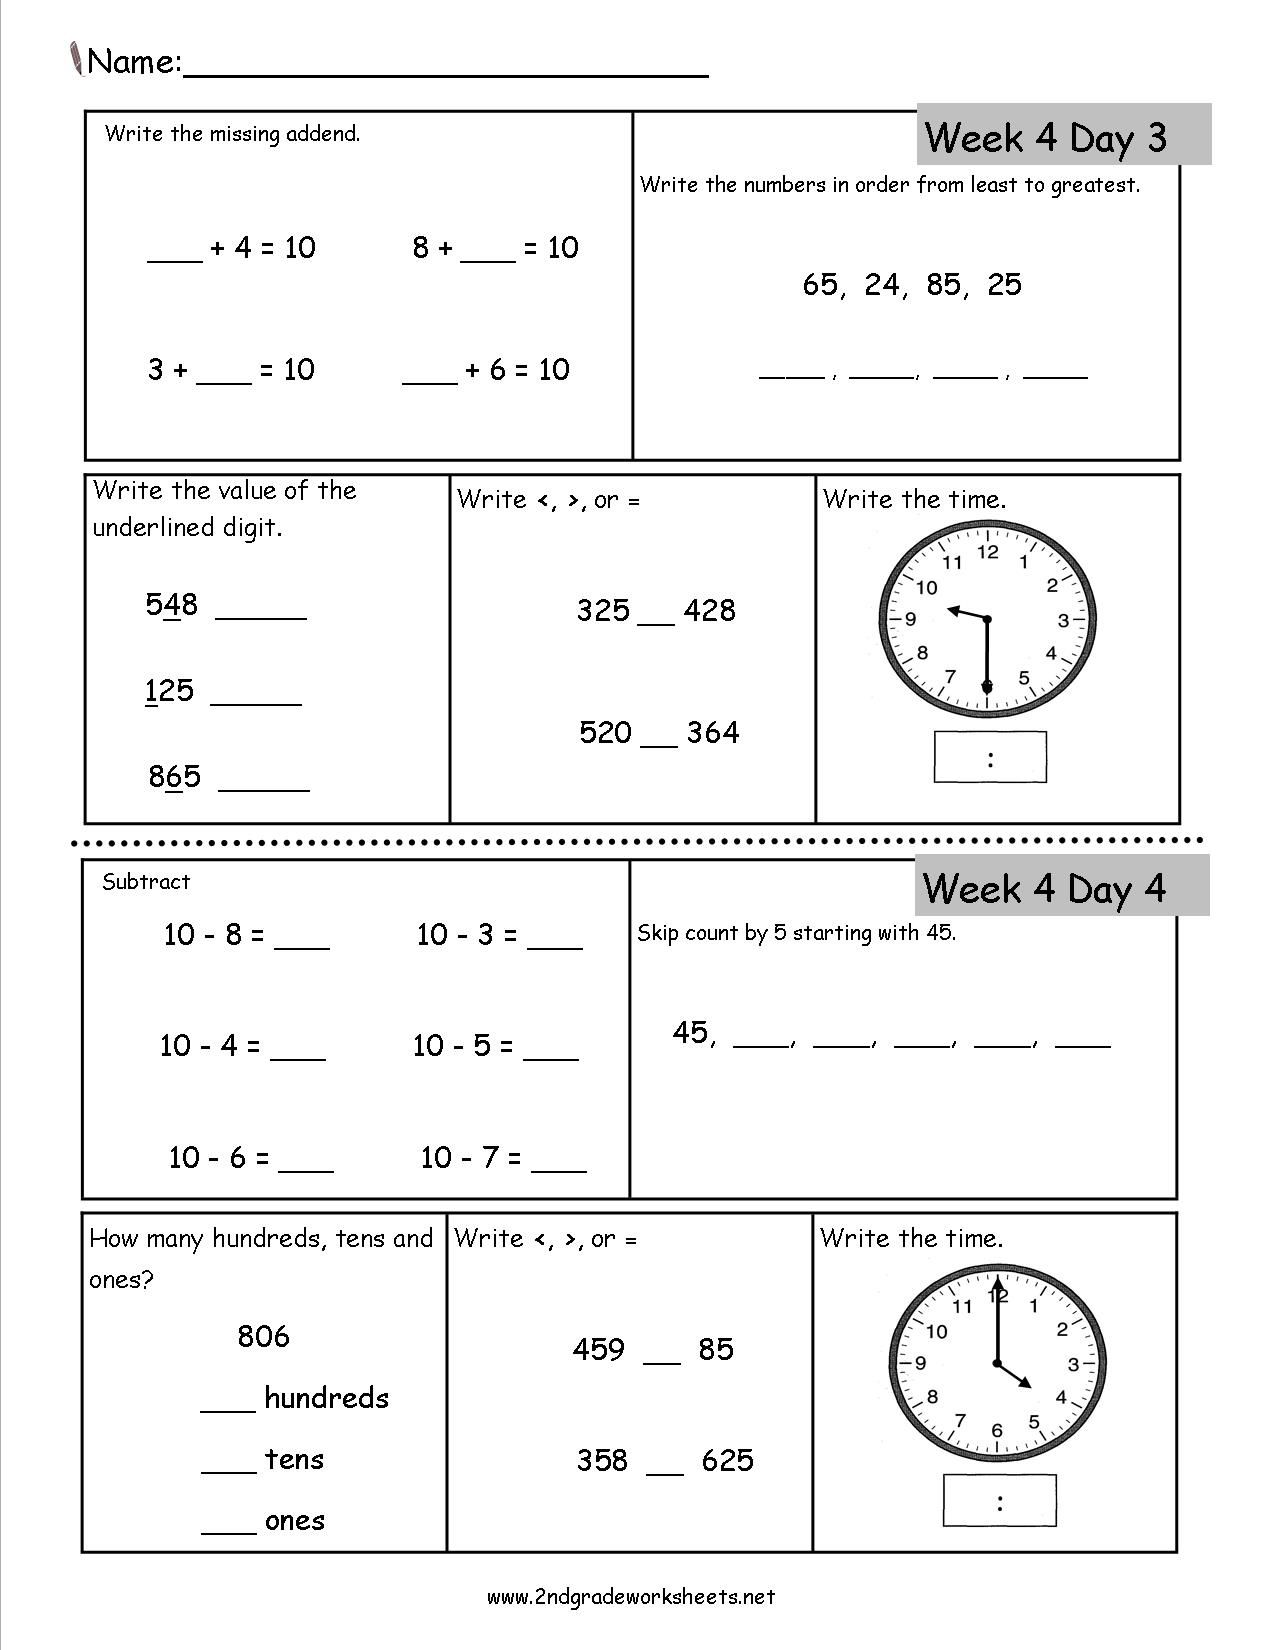 Free 2nd Grade Daily Math Worksheets   Math review worksheets [ 1650 x 1275 Pixel ]